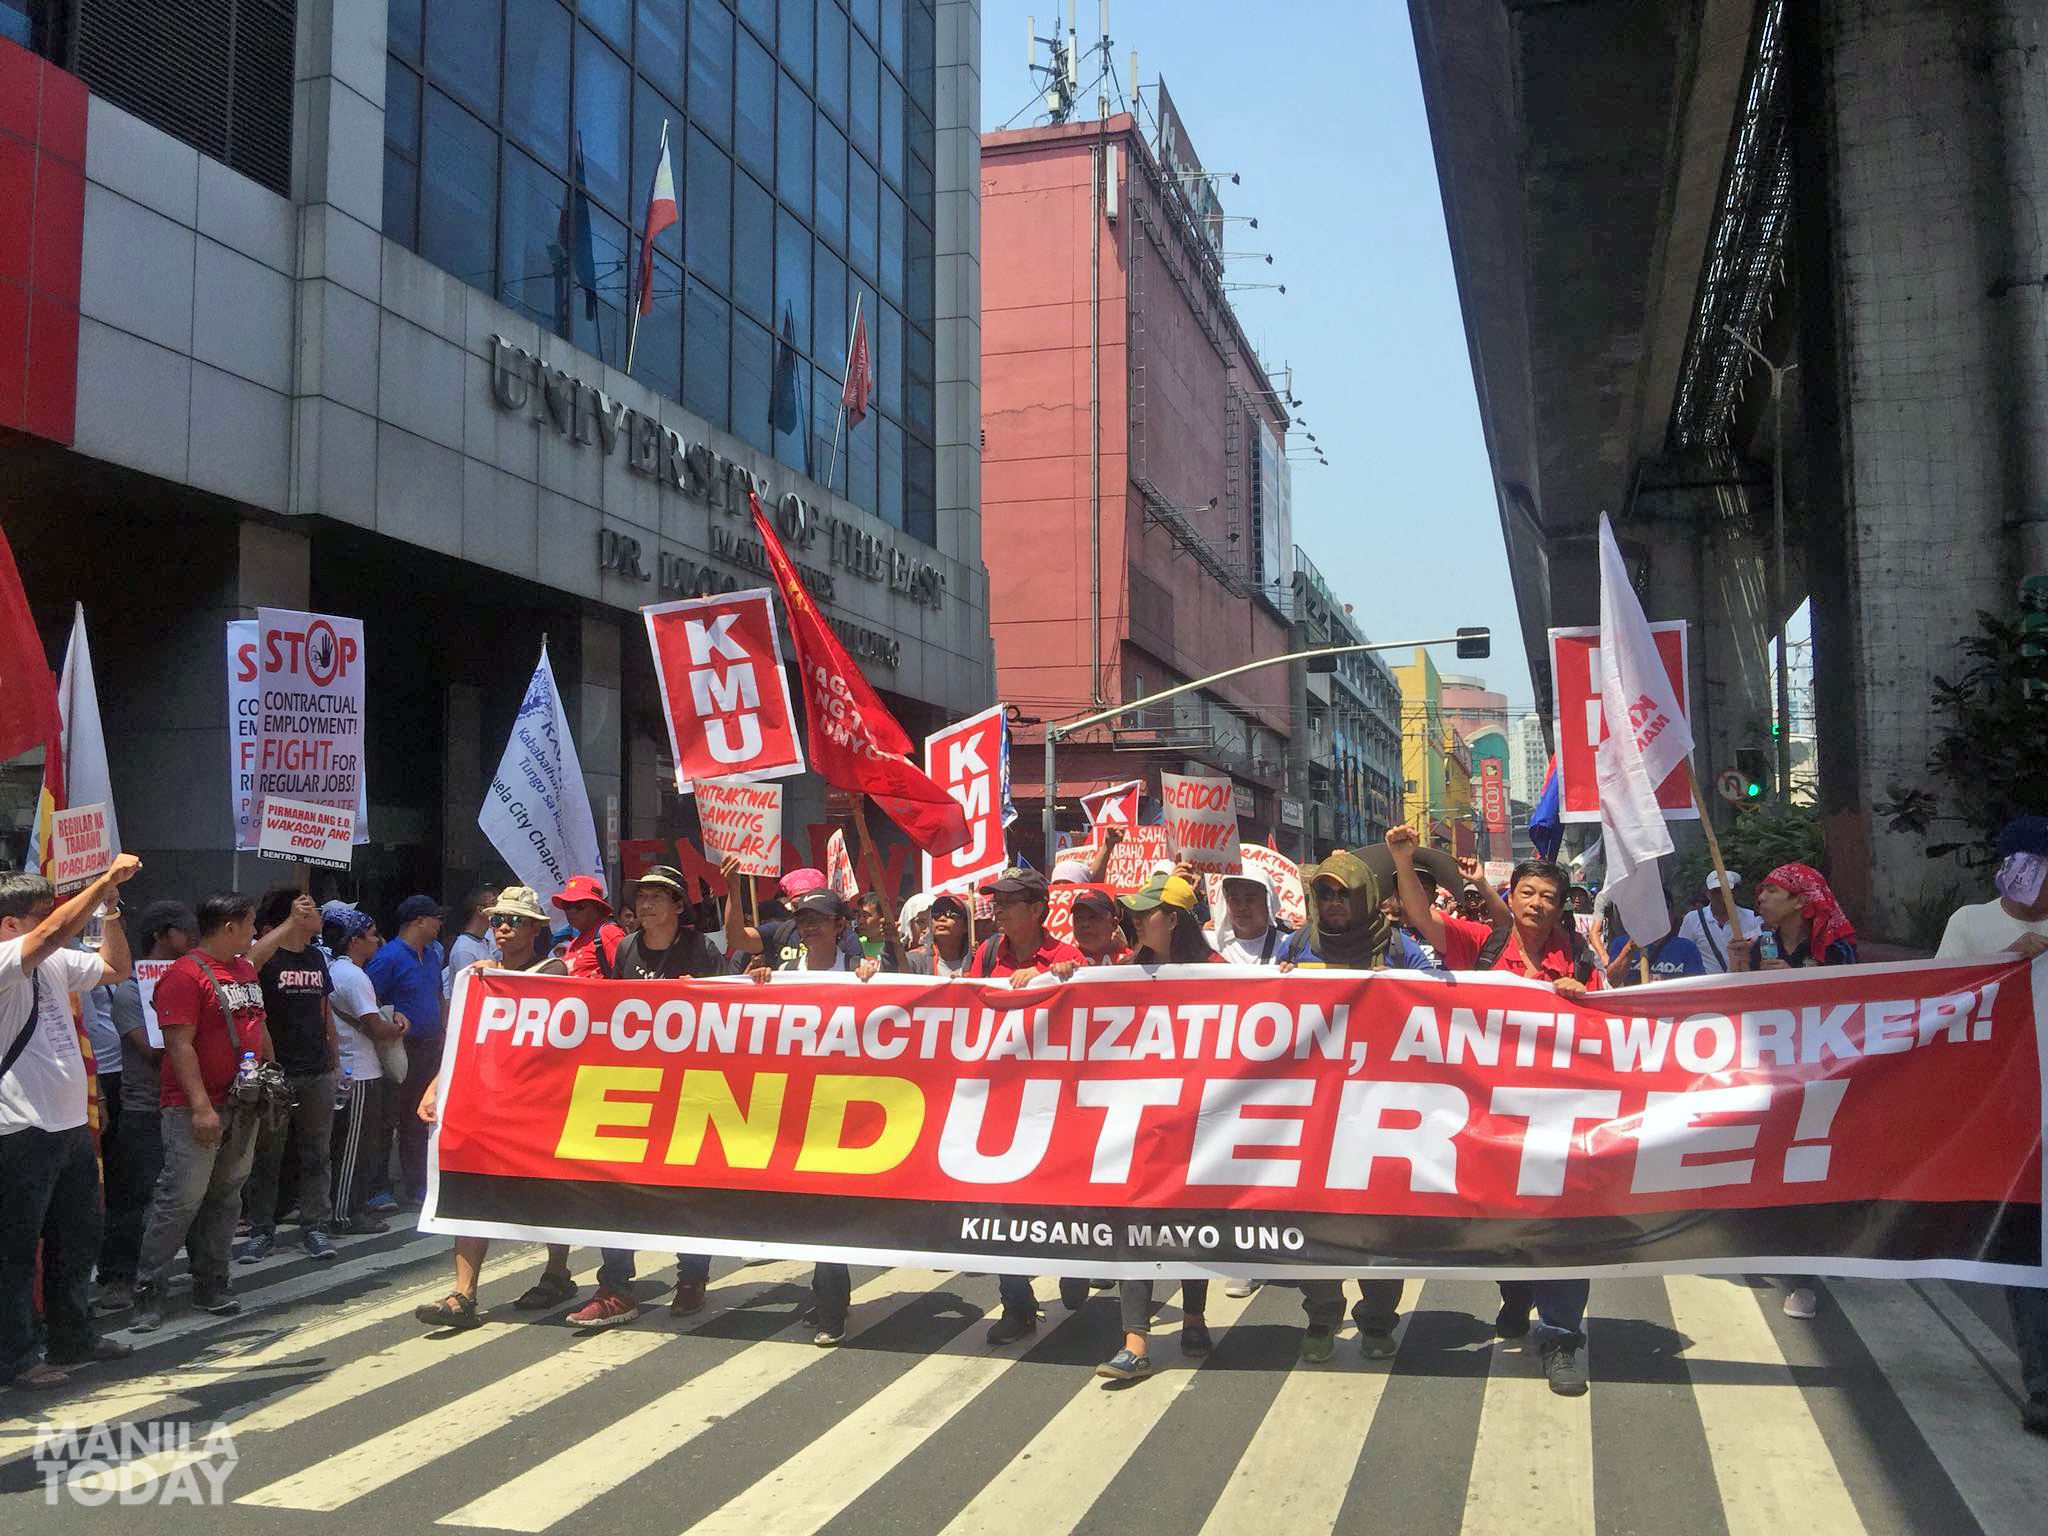 Workers demanding end to contractualization marched from DOLE to Mendiola. Photo by Kathy Yamzon.